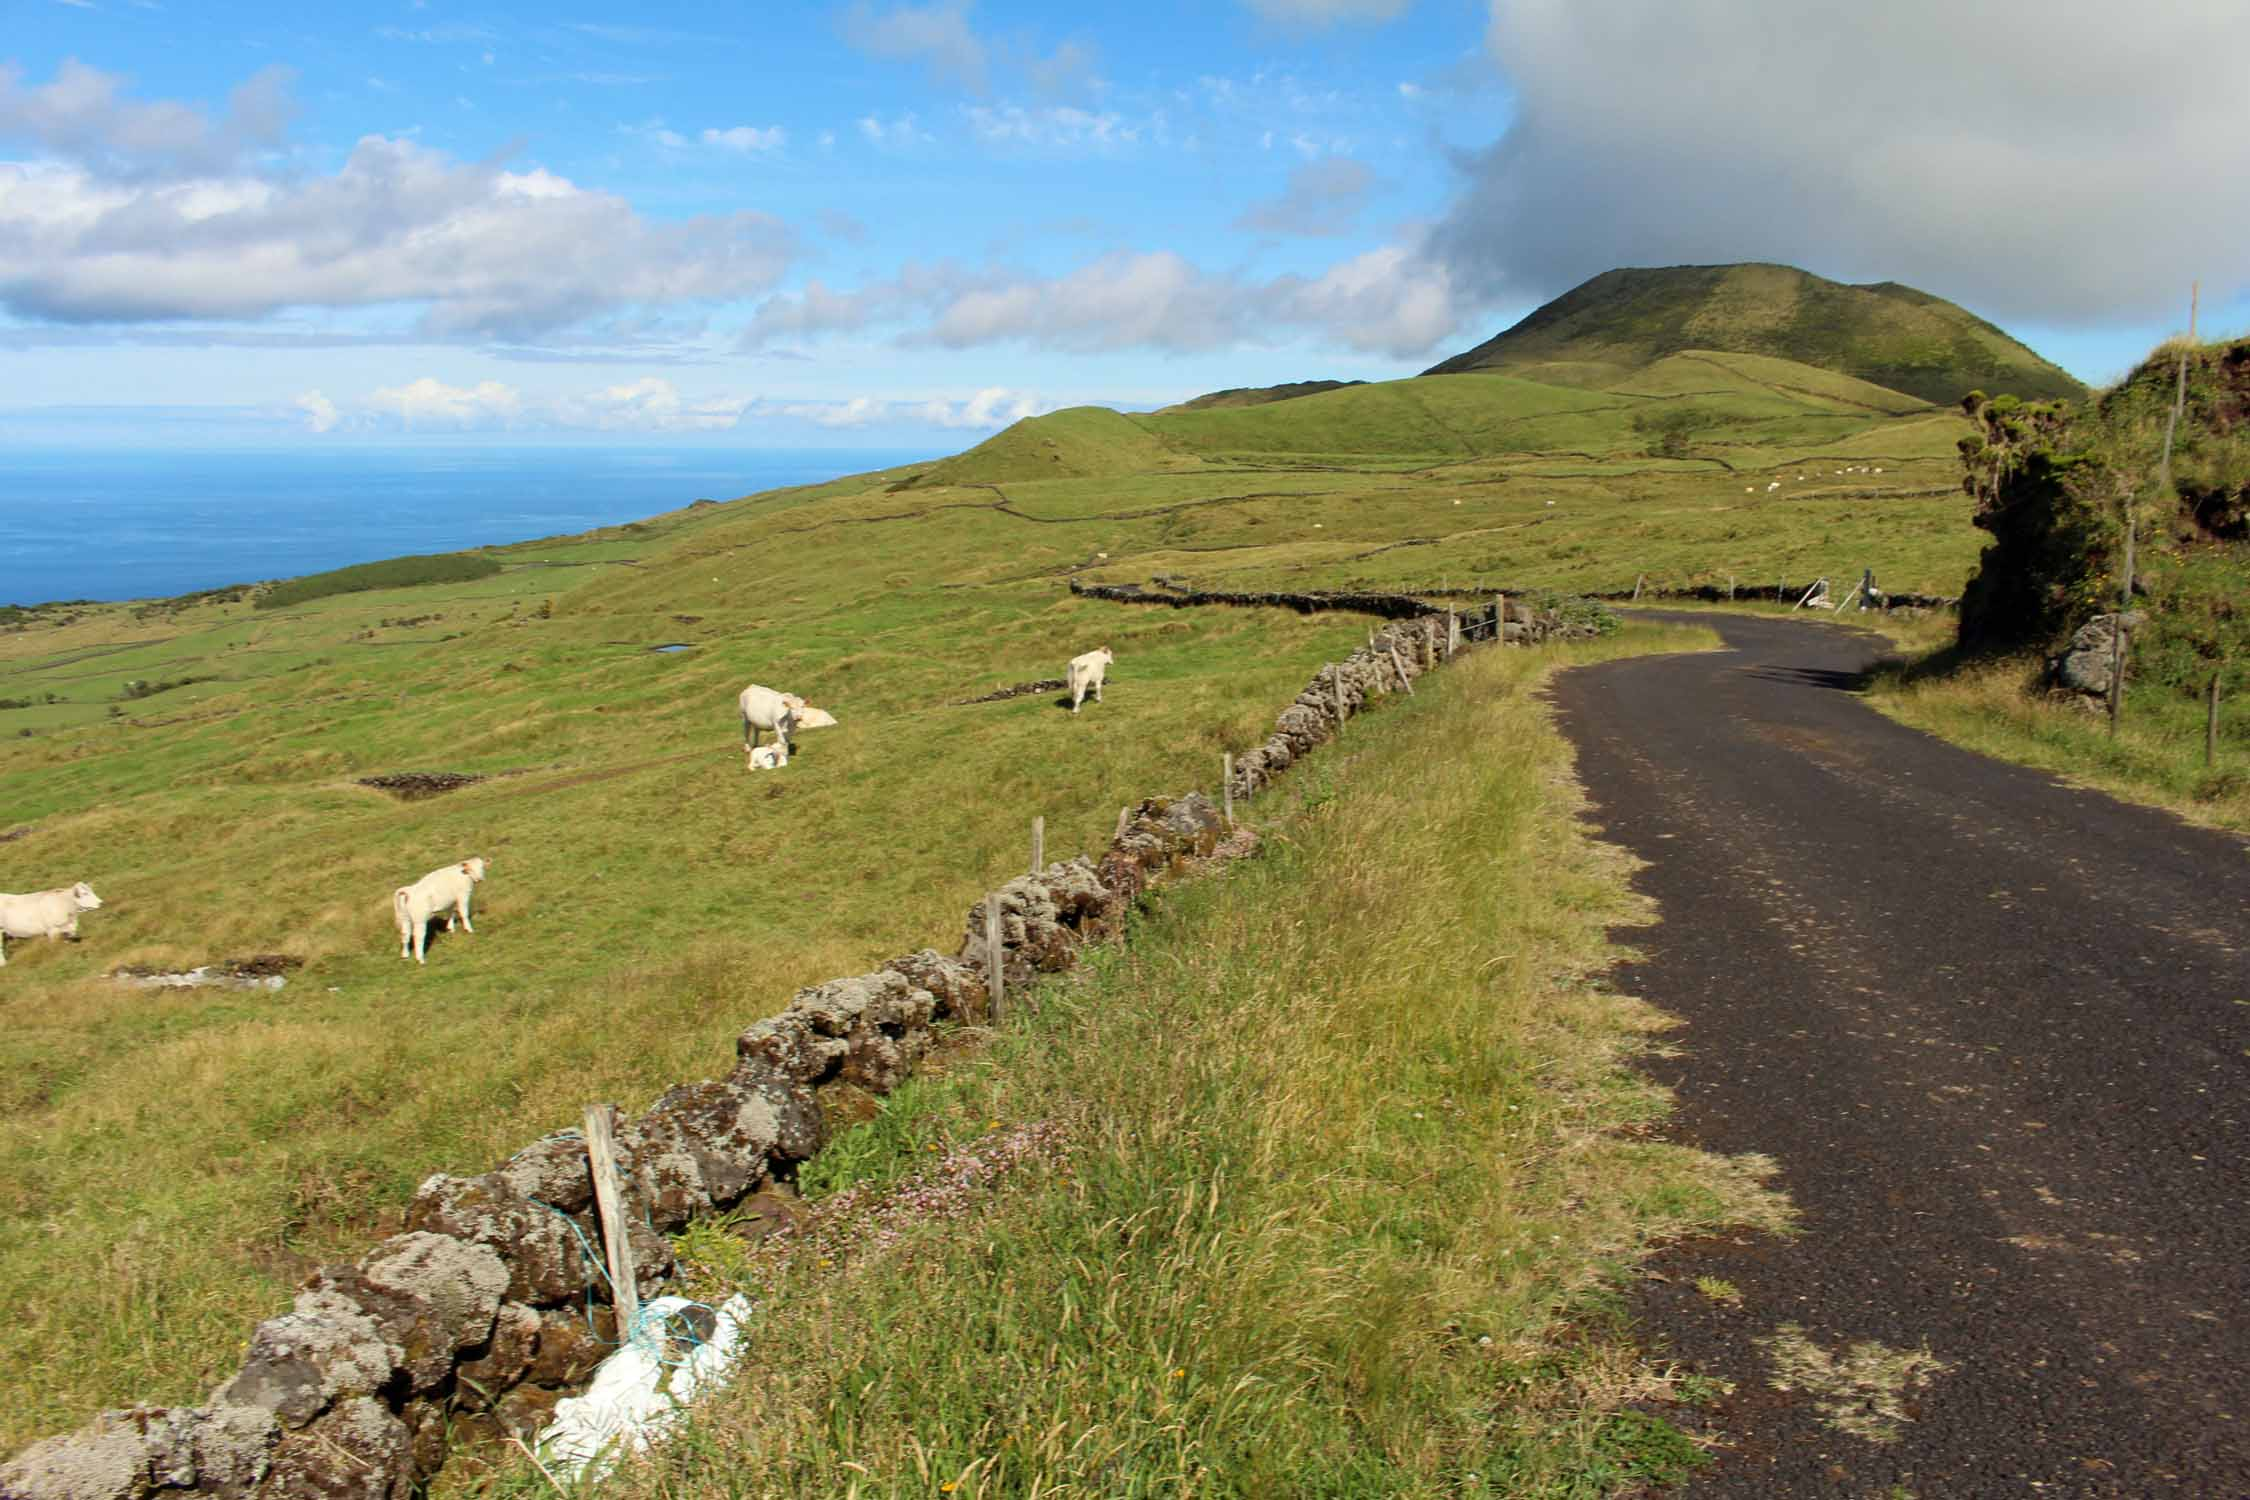 Beautiful landscape near Ribeirinha in Pico Island, Azores